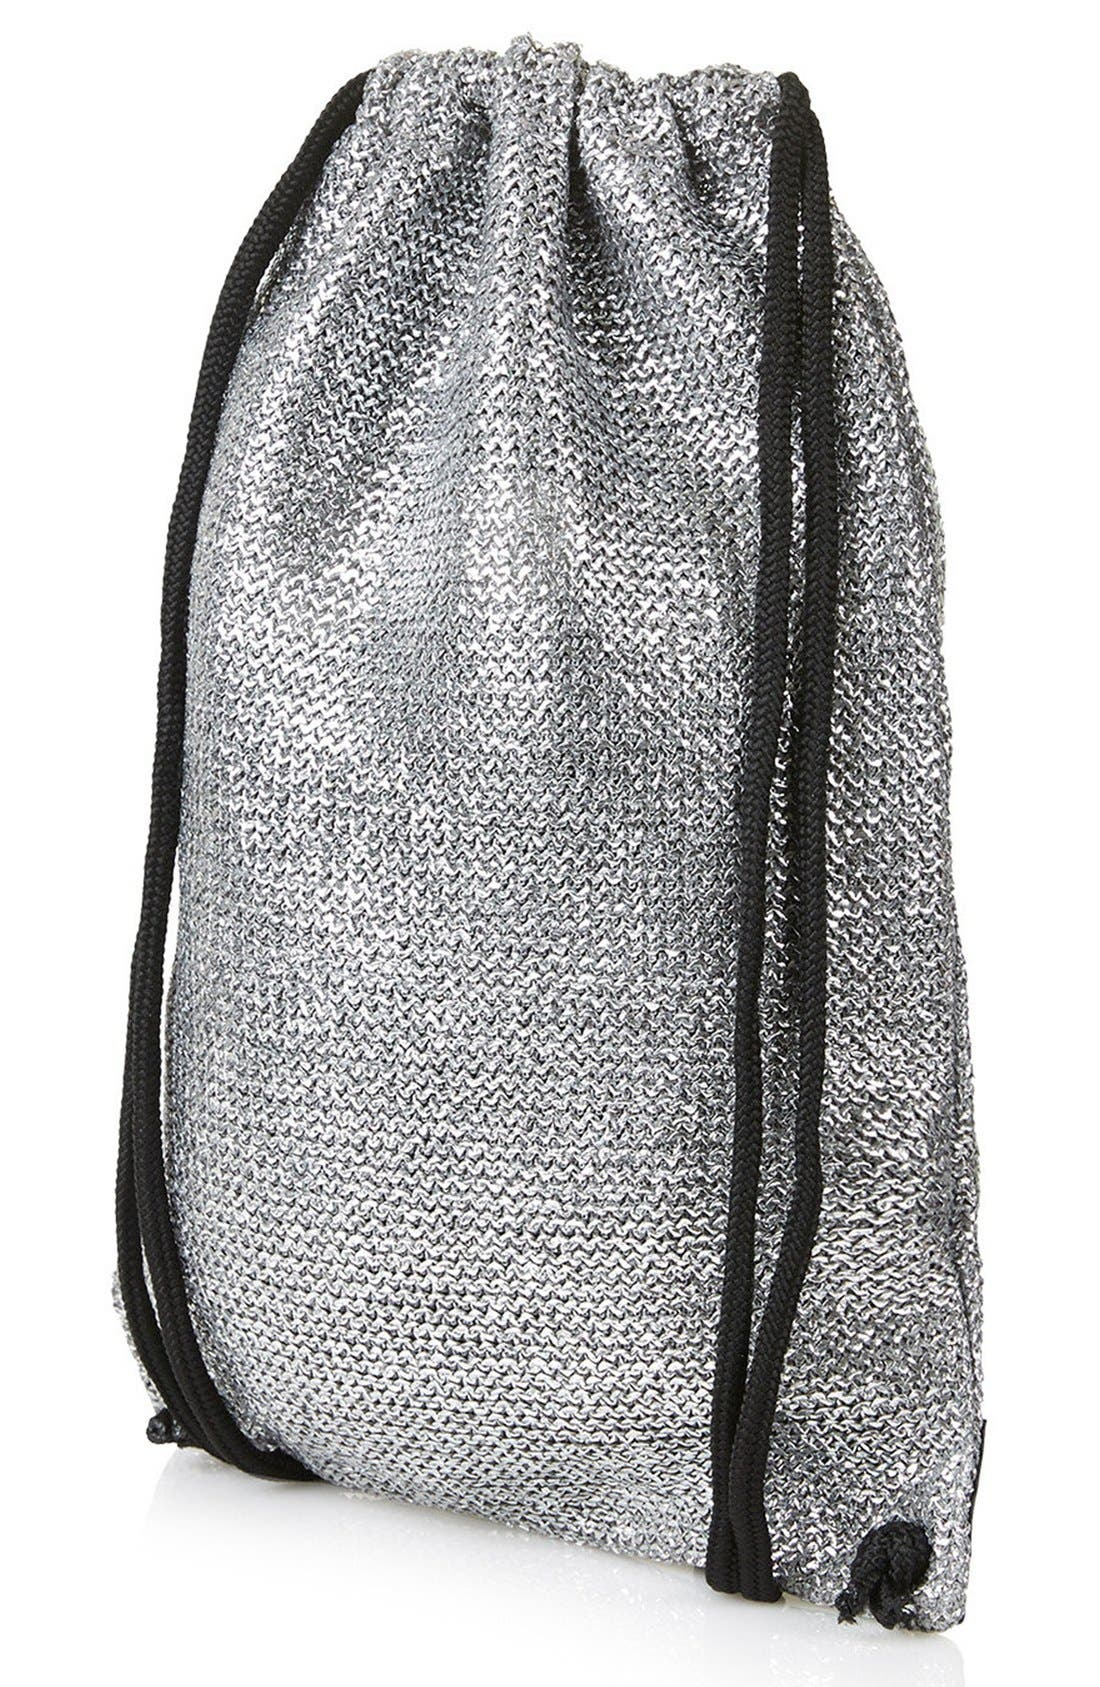 Alternate Image 3  - Topshop 'Metallix' Woven Drawstring Bag